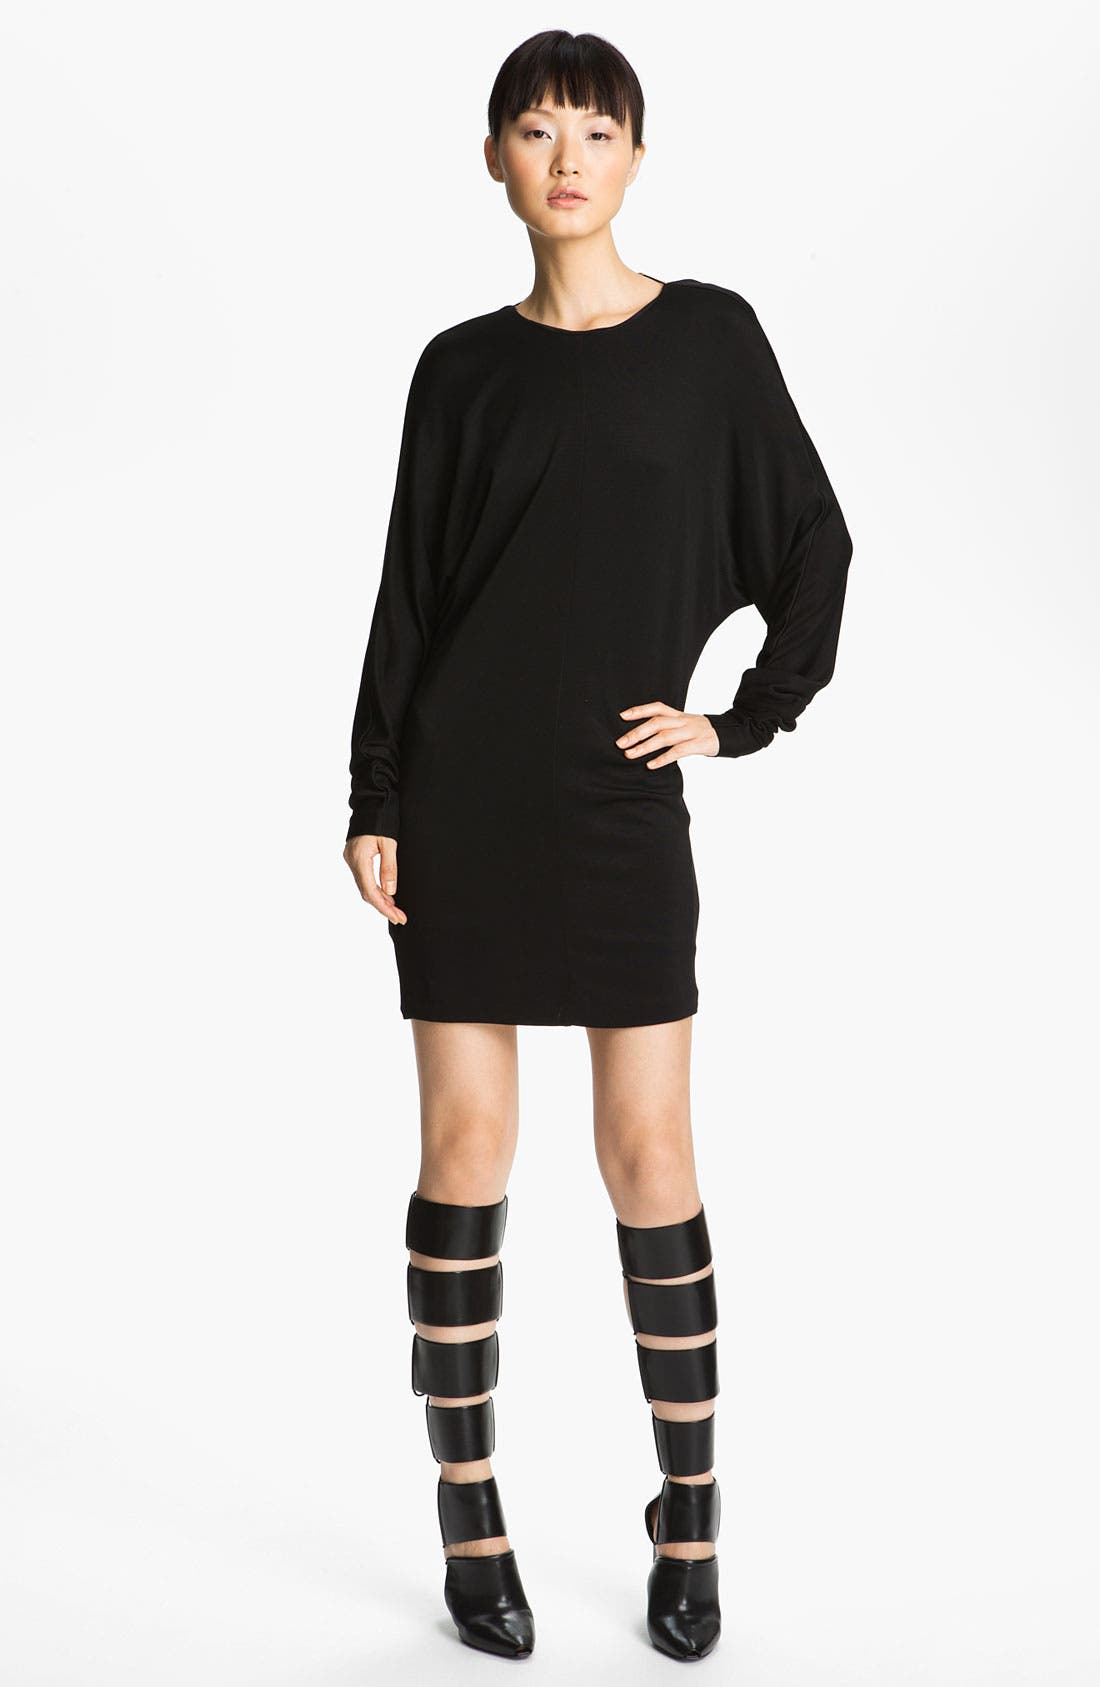 Alternate Image 1 Selected - T by Alexander Wang Double Knit Piqué Dress